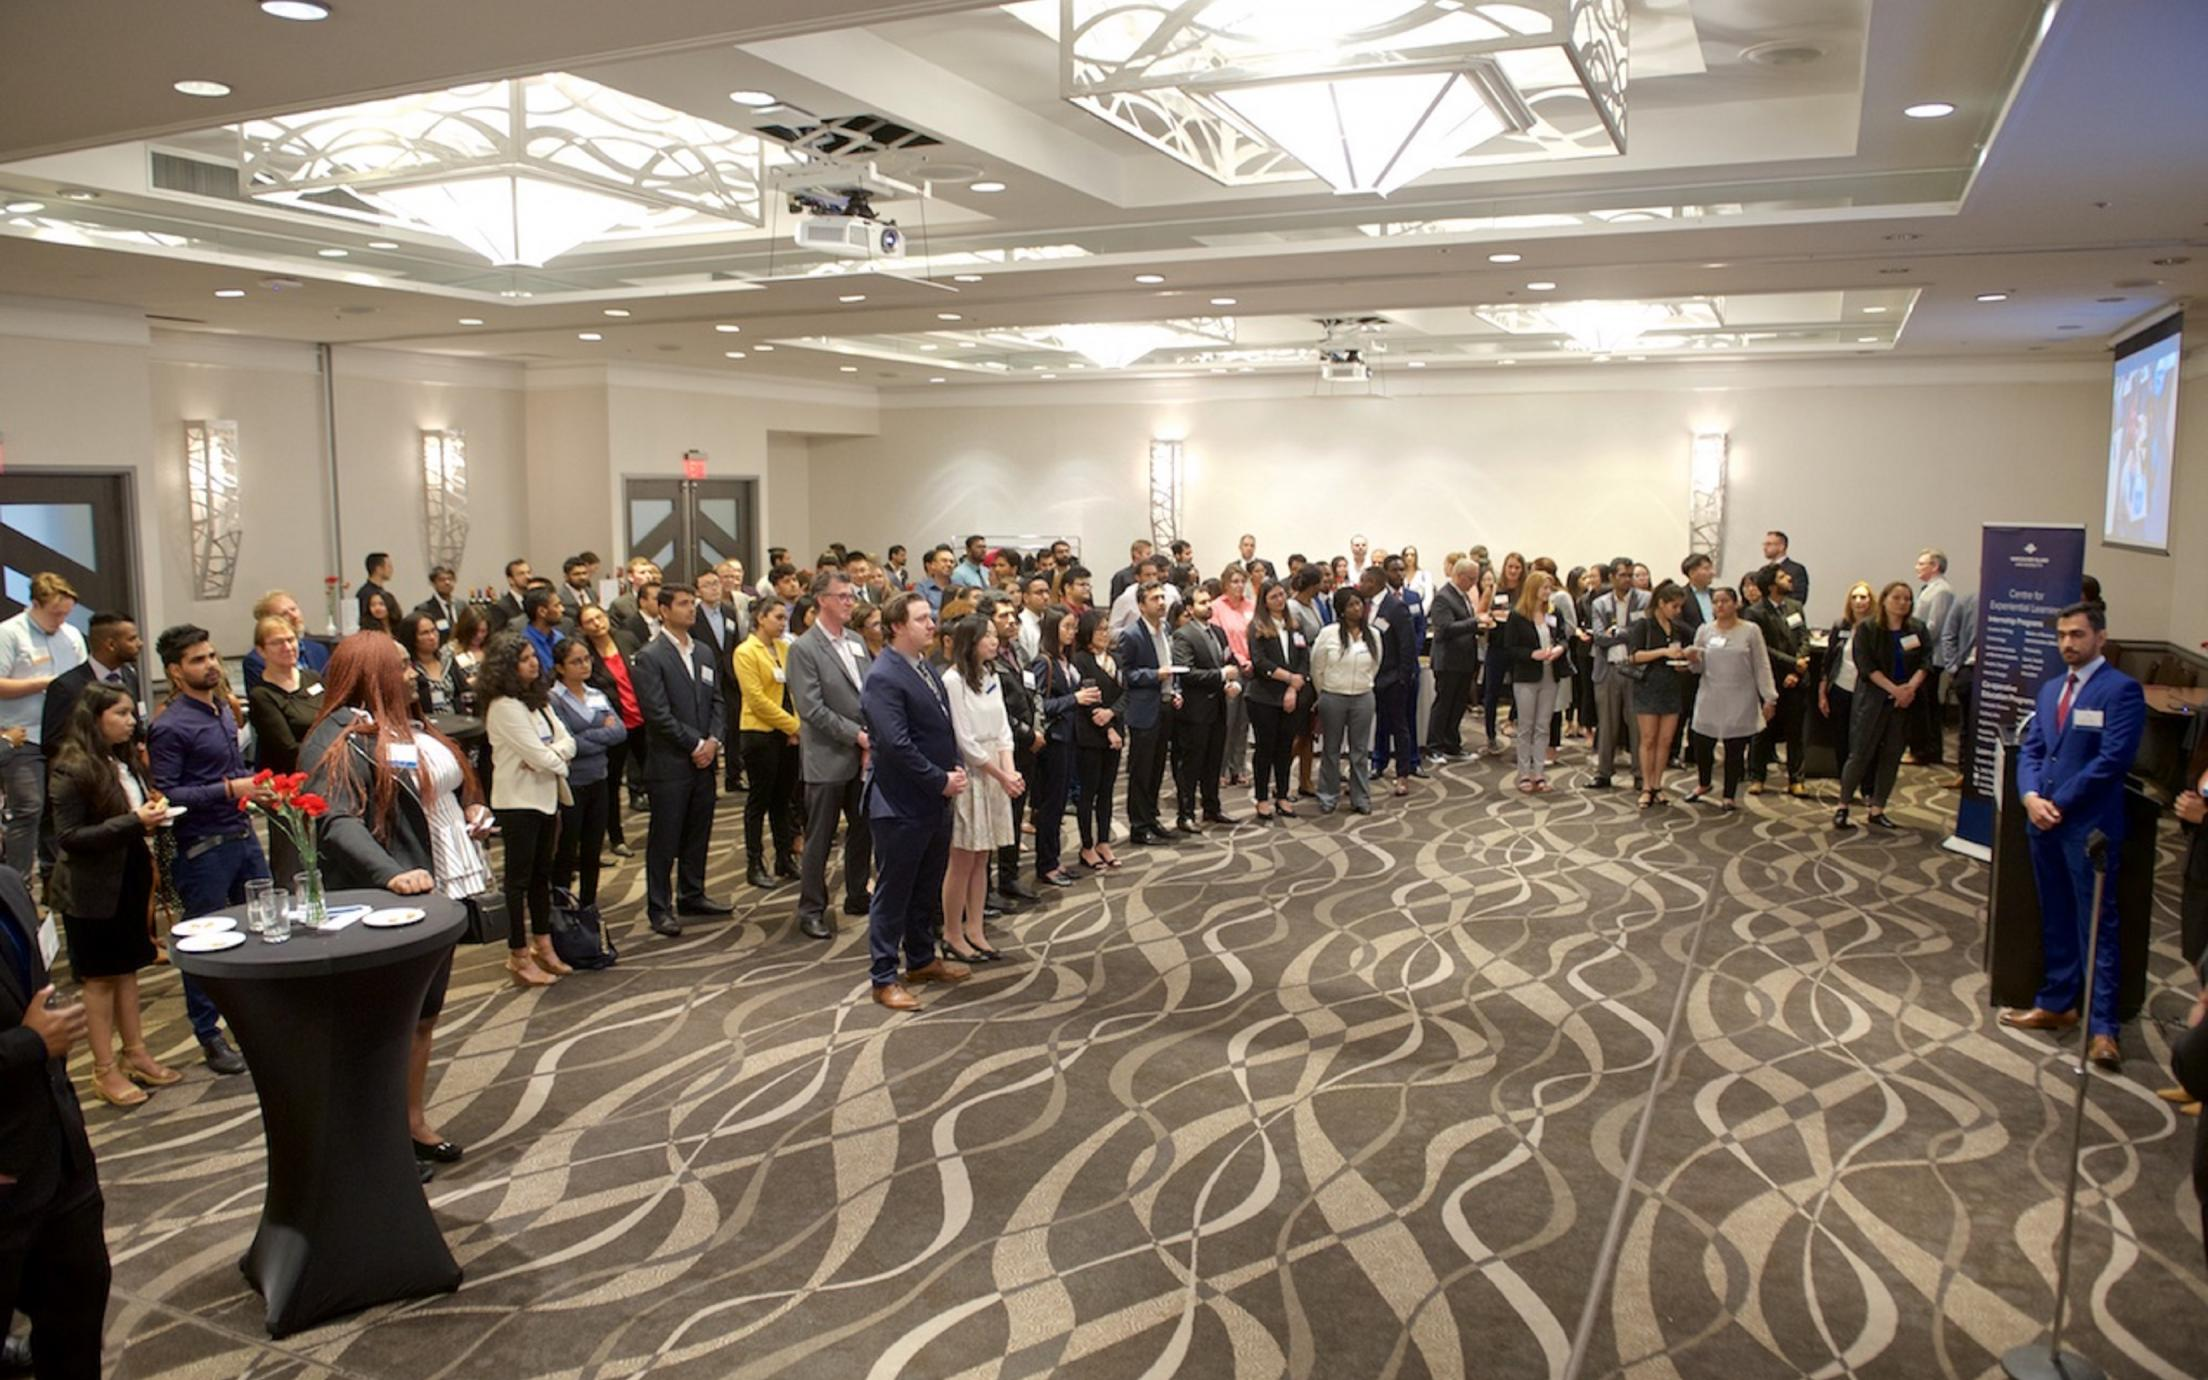 Attendees at the 2019 Business Mixer at the Coast Bastion Hotel